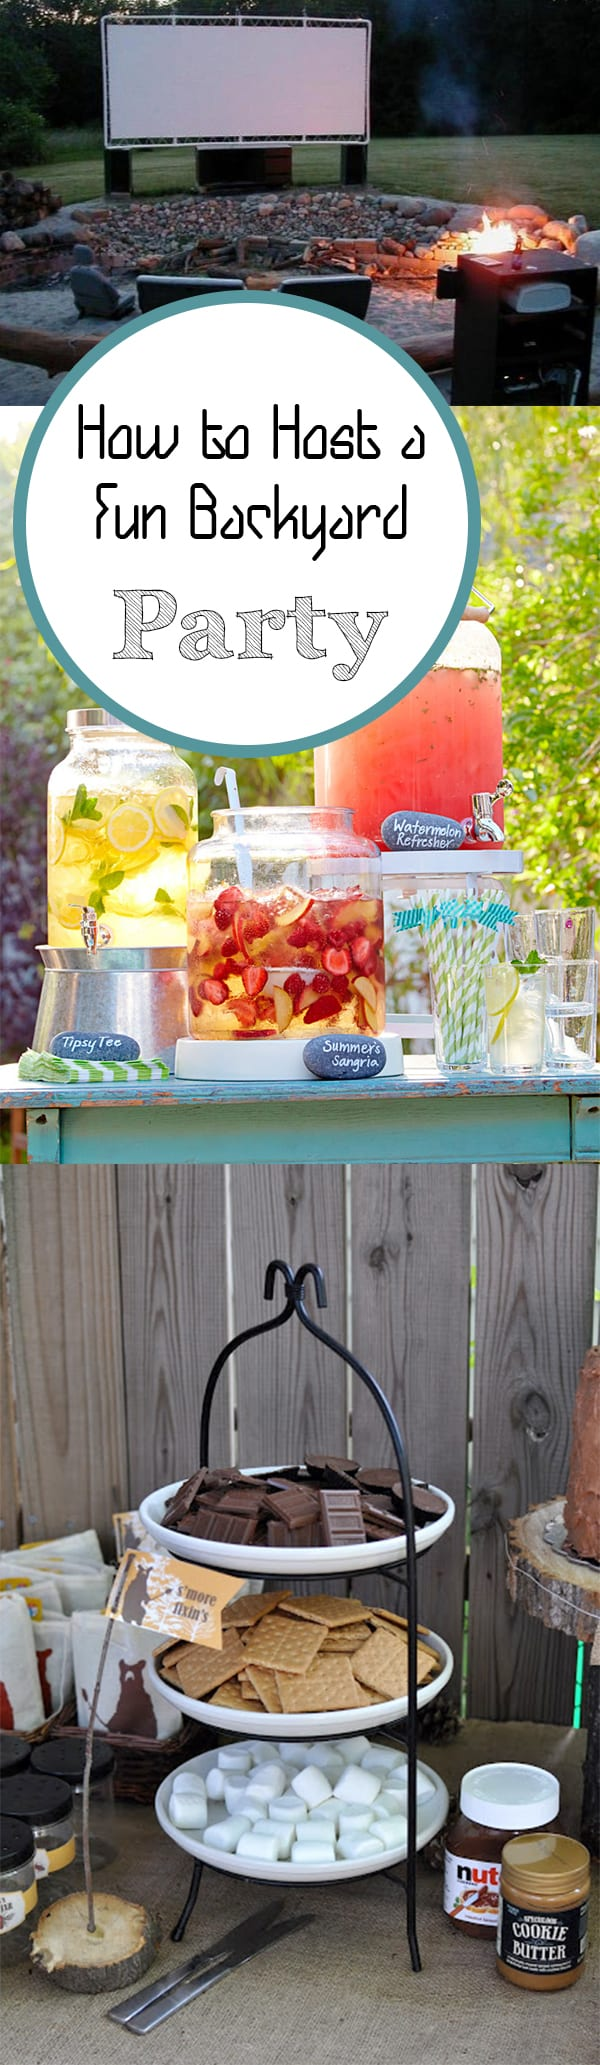 parties backyard decor summer party summer barbecue ideas